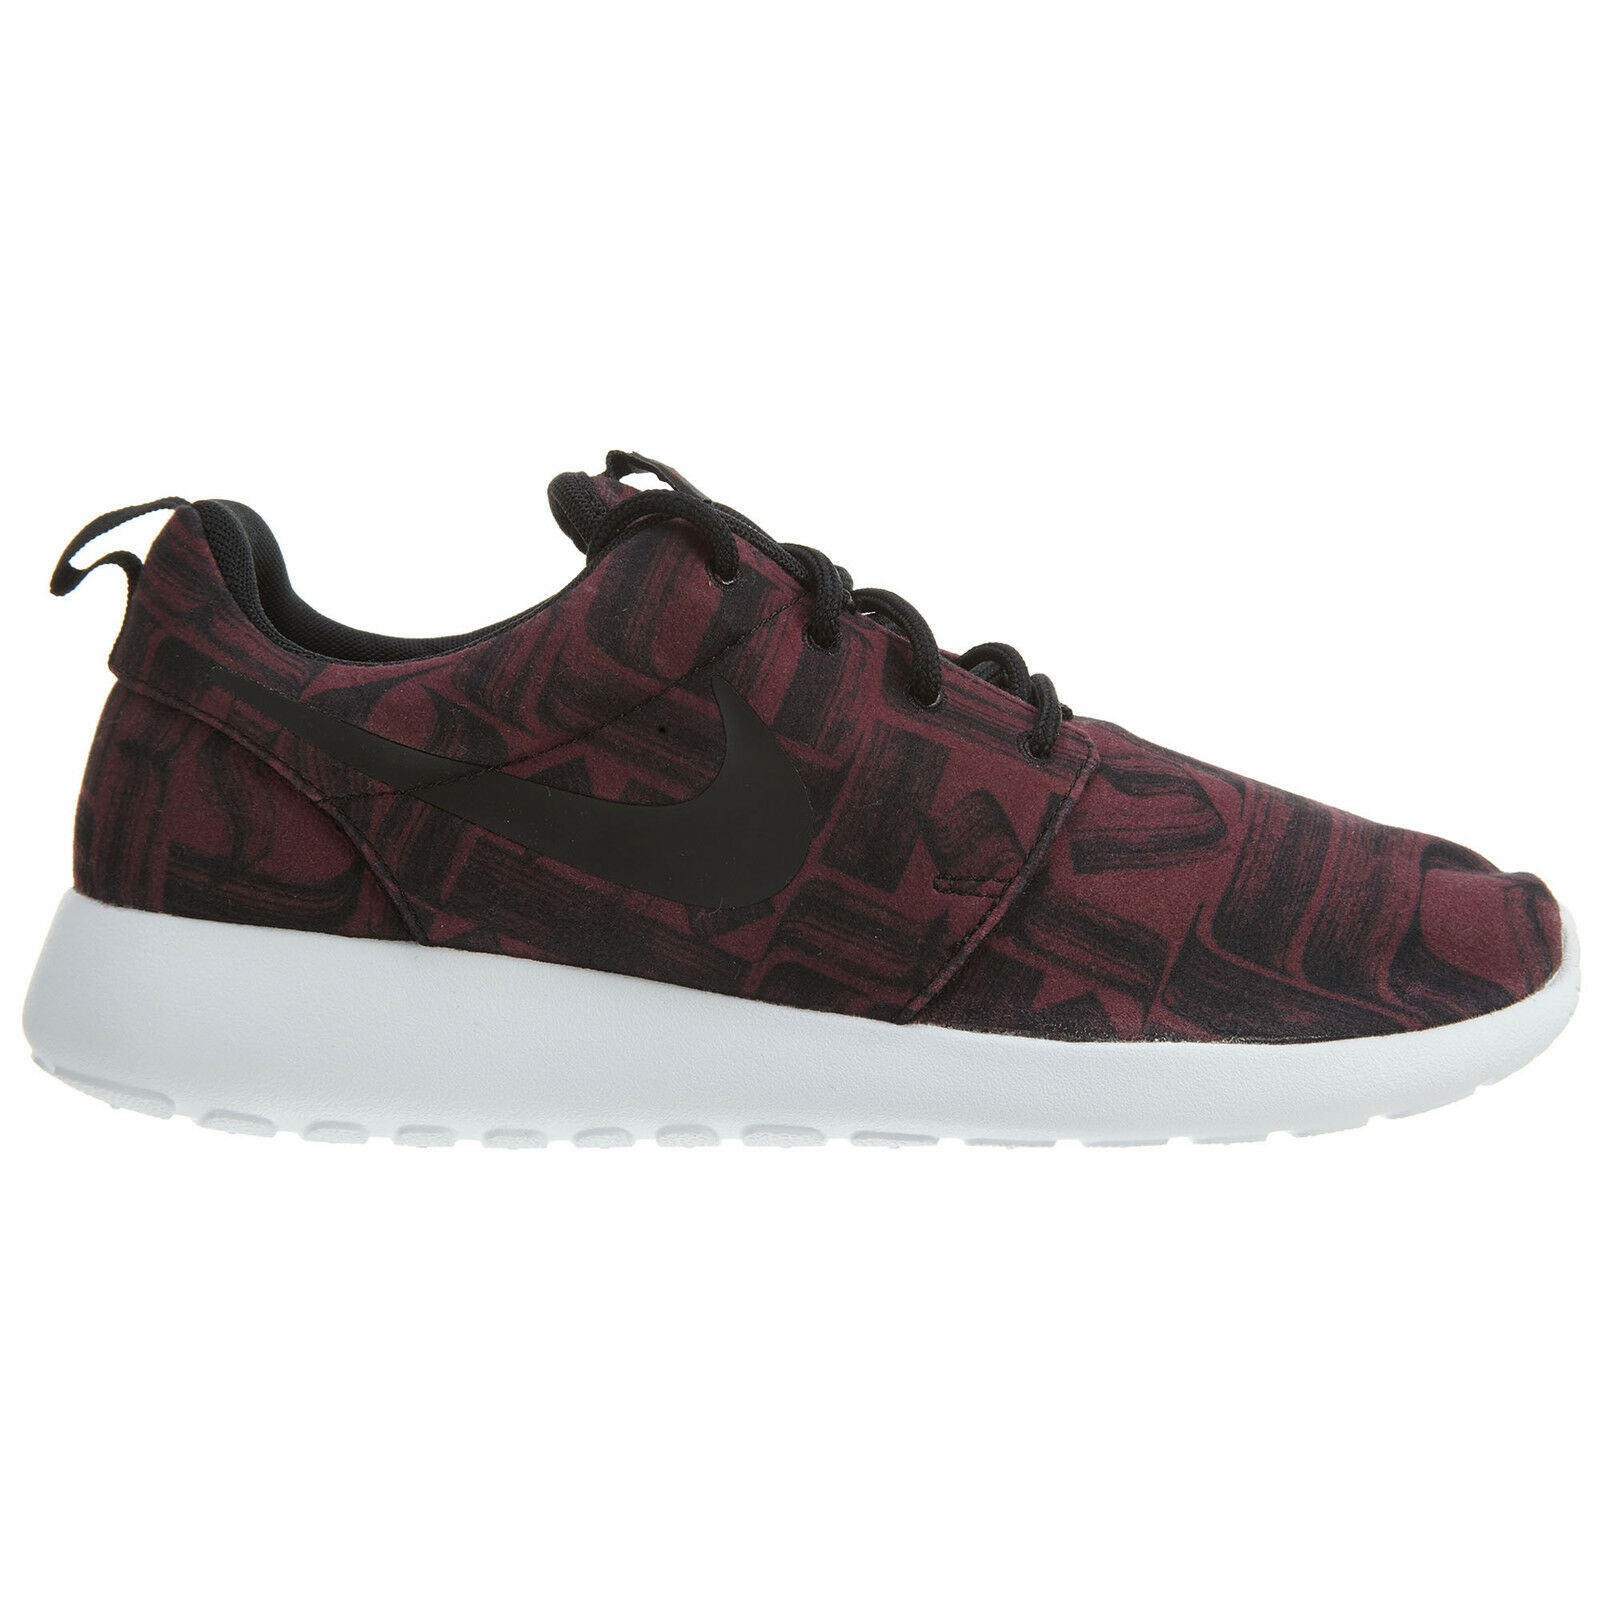 5e11582d6d95e CONTACT AND LOCATION INFORMATION. maroon roshe run womens